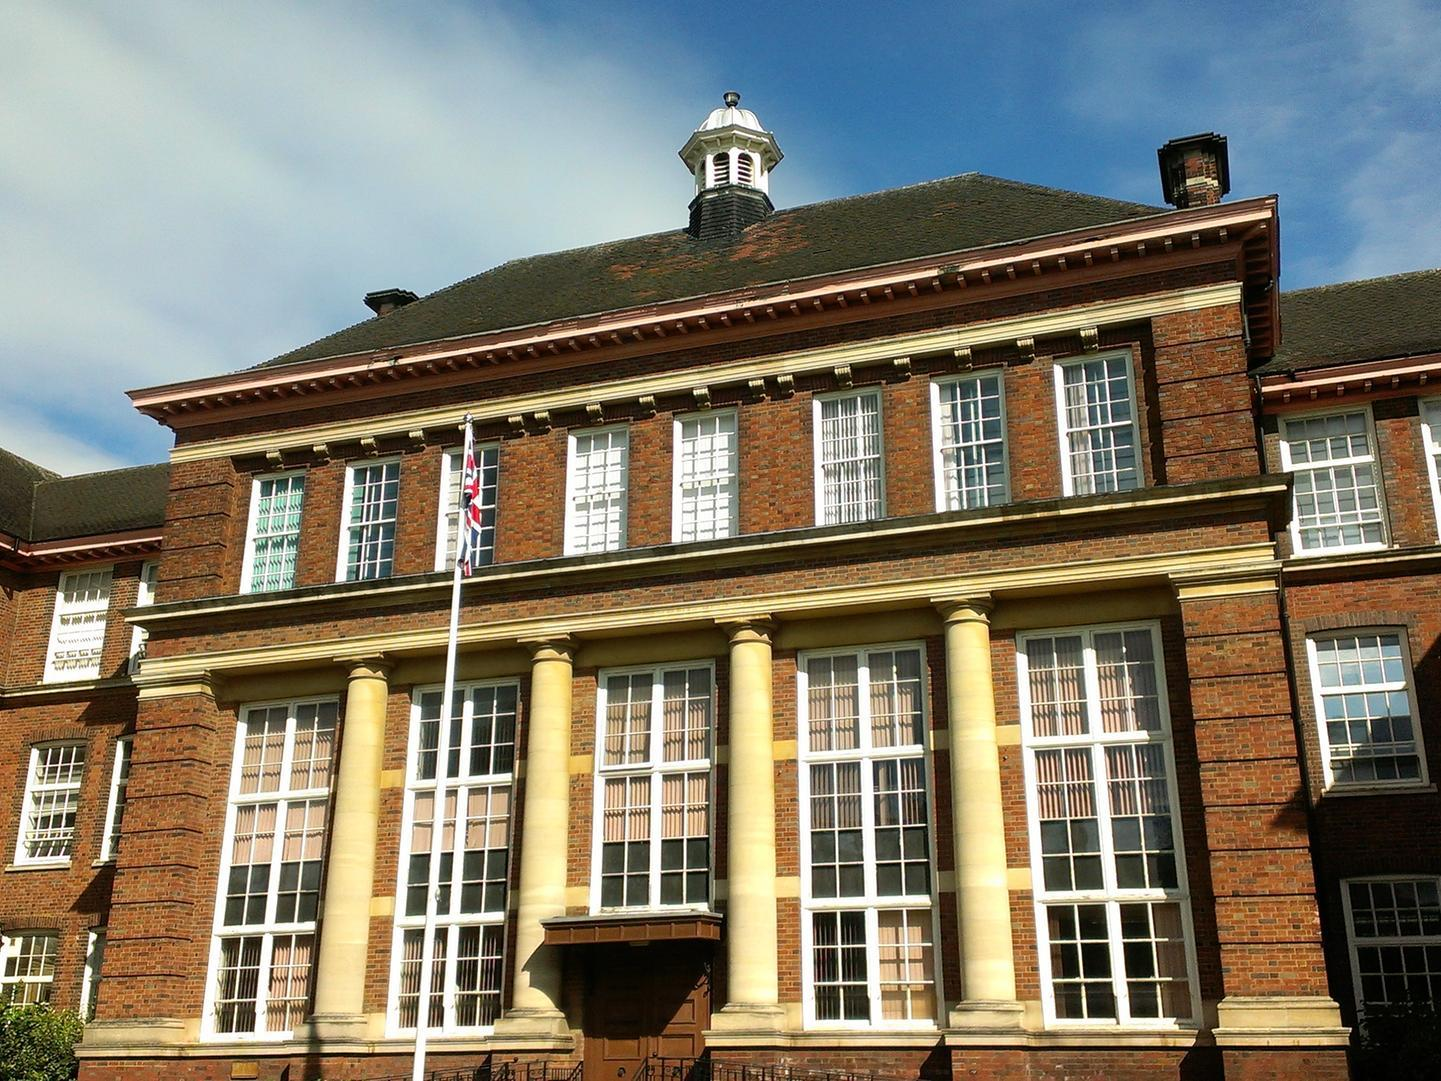 City council for Kettering agreed